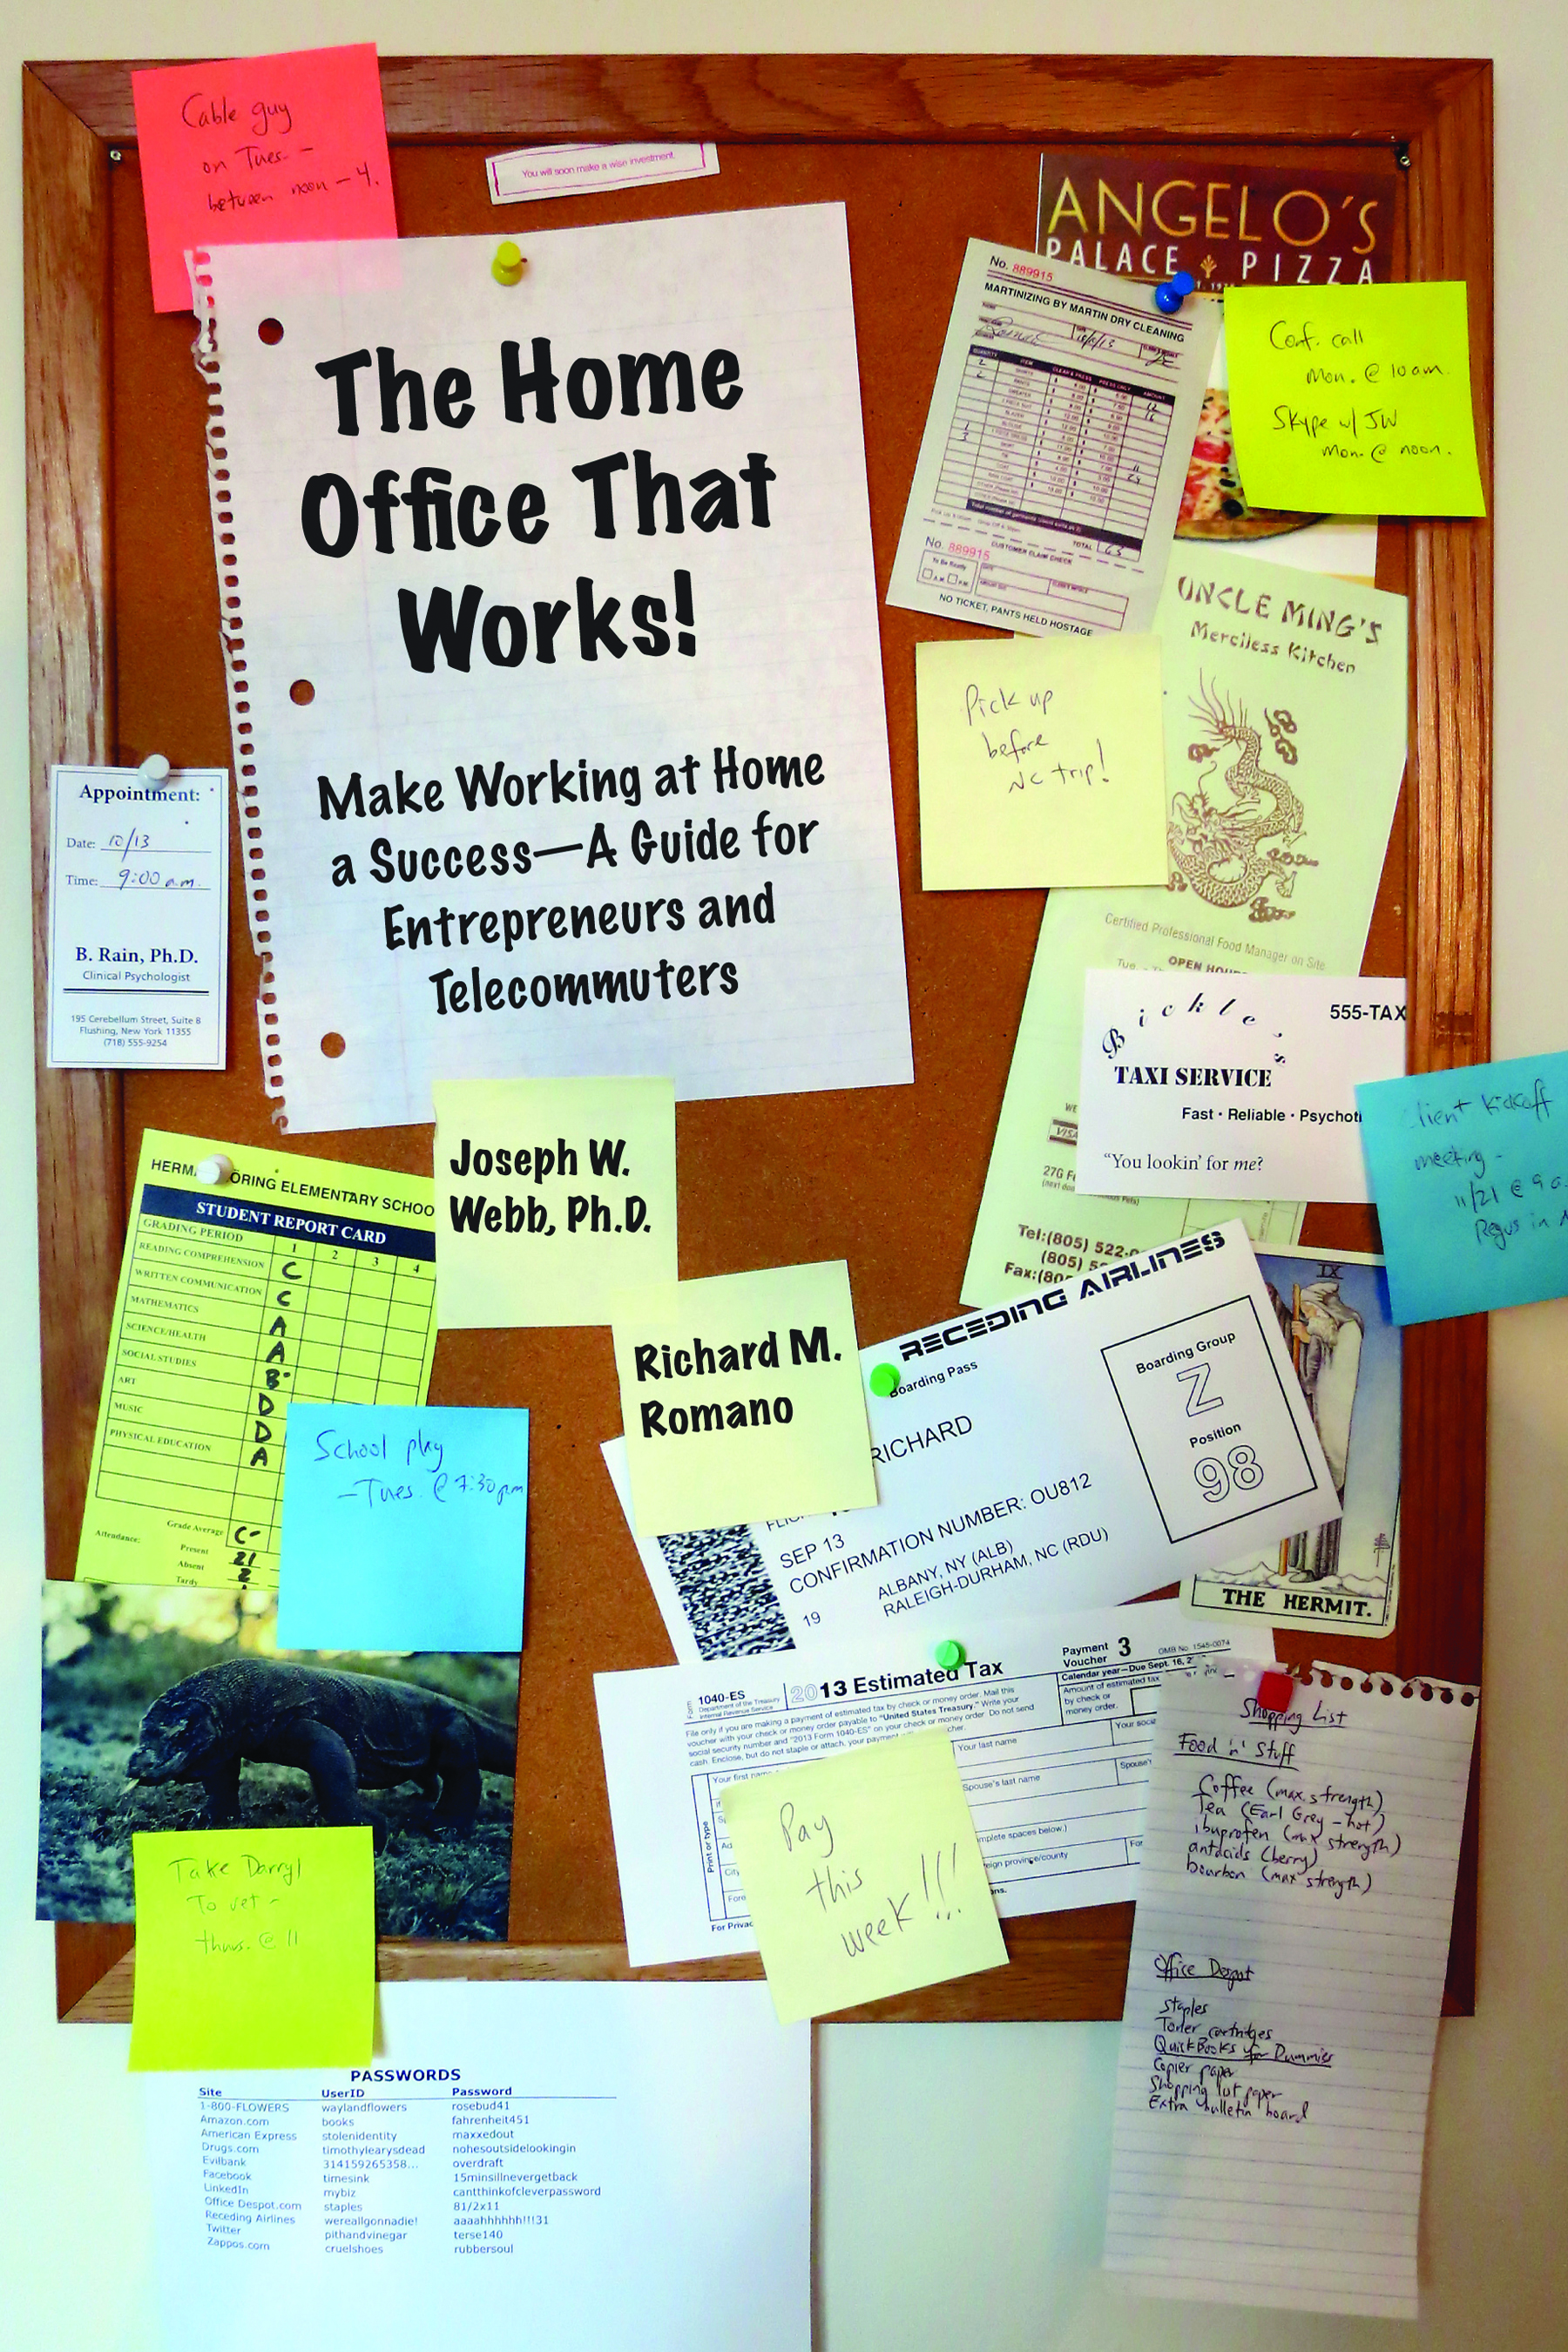 The Home Office That Works